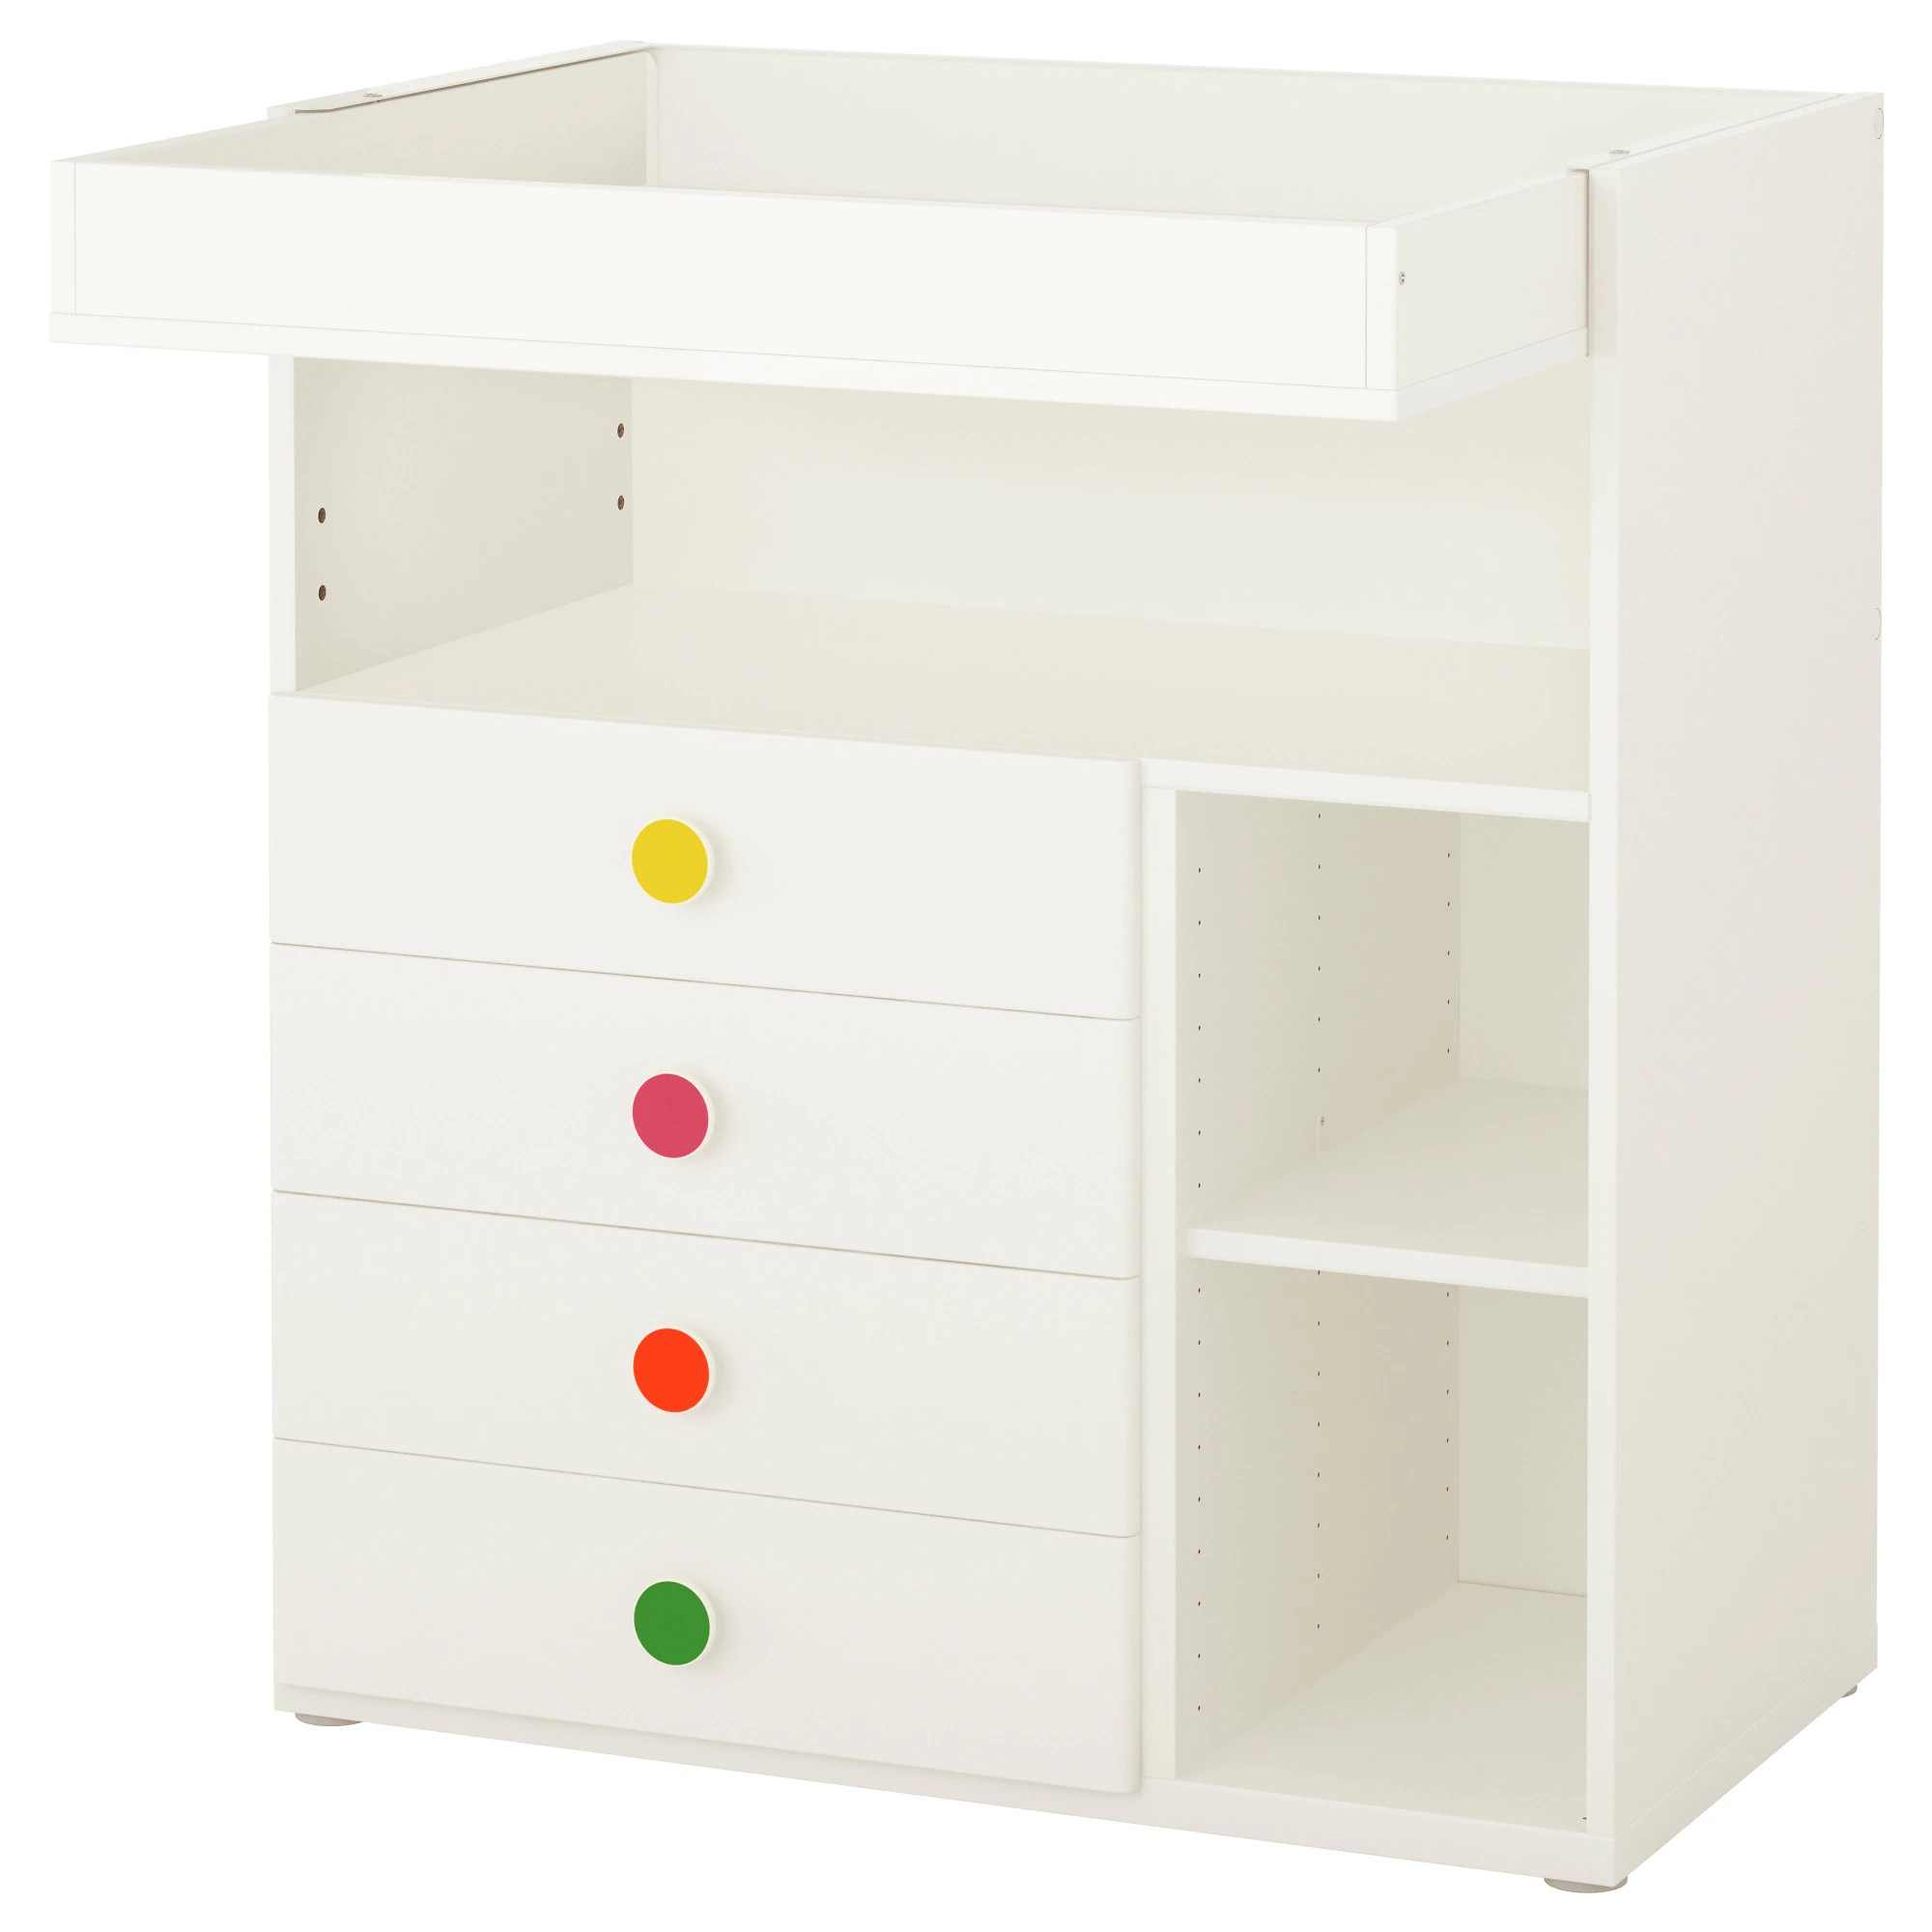 Changing Table Chest Of Drawers Stuva FÖlja Changing Table With 4 Drawers White